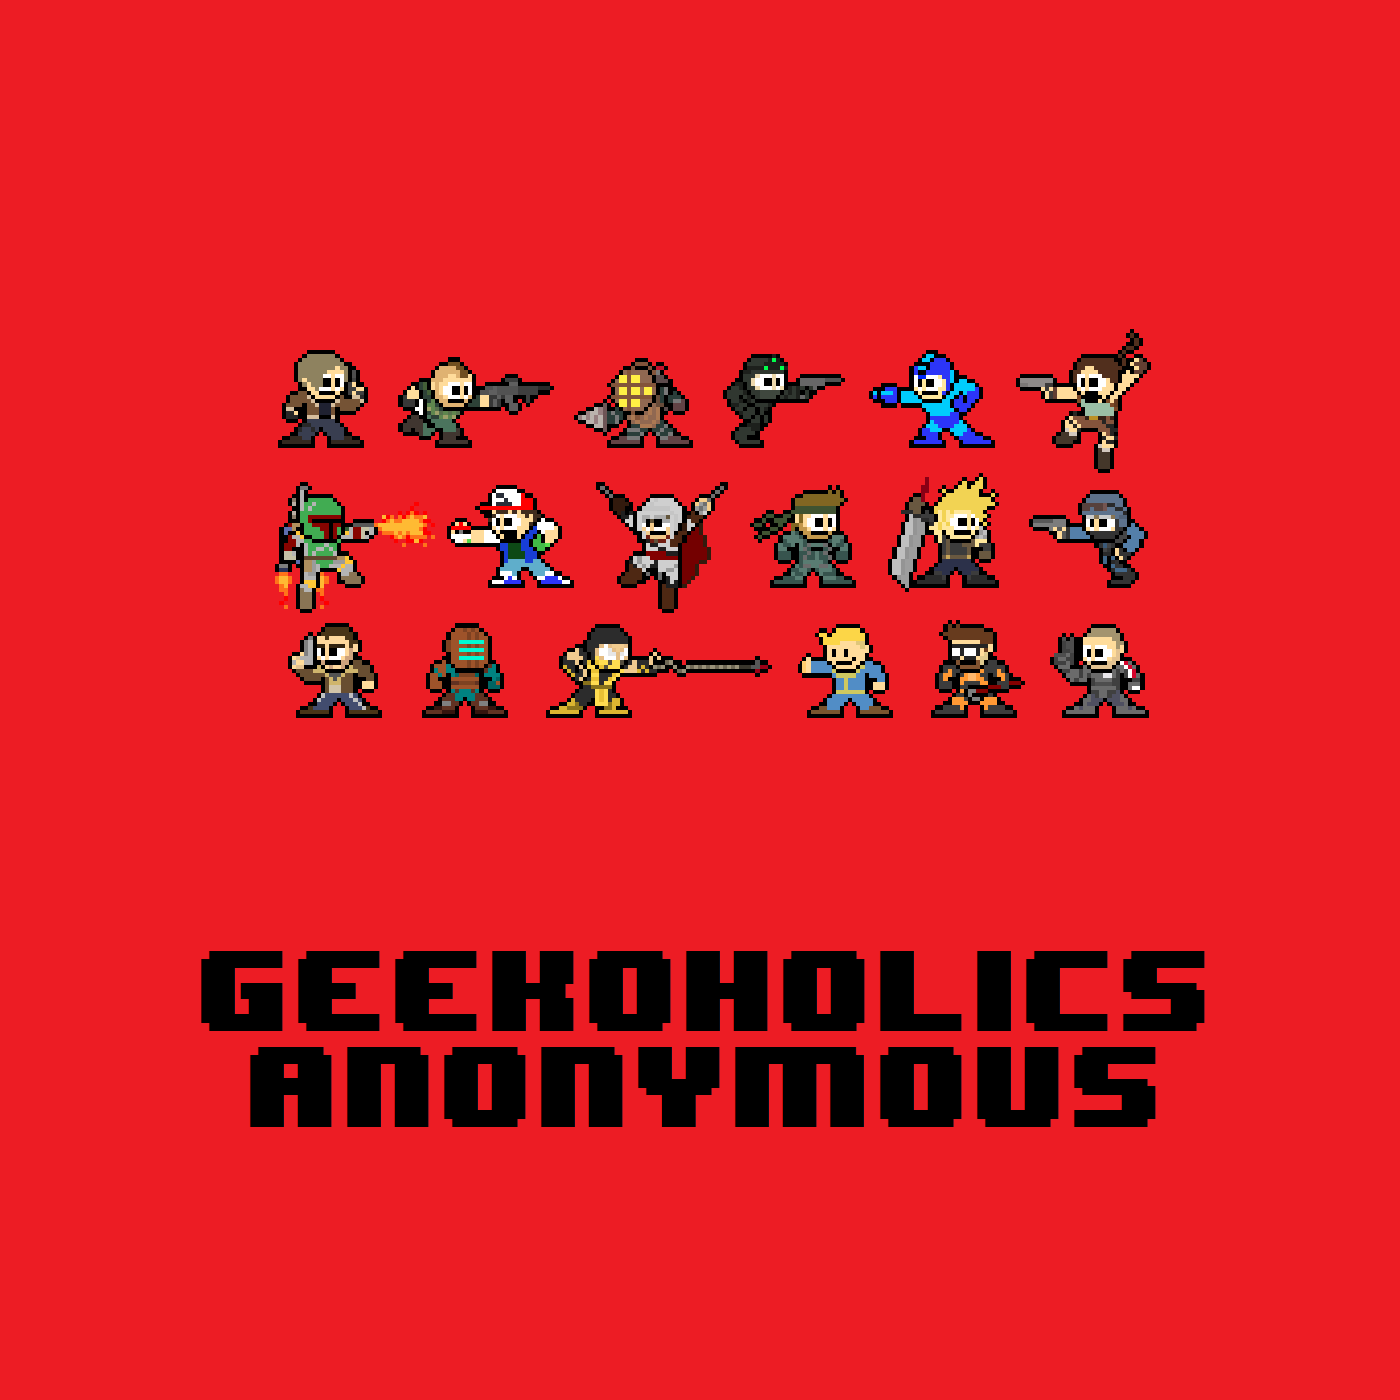 Resident Evil 2, Cyber Shadow, Dayne's IT Tech Support Hotline and more - Geekoholics Anonymous Podcast 291 show art